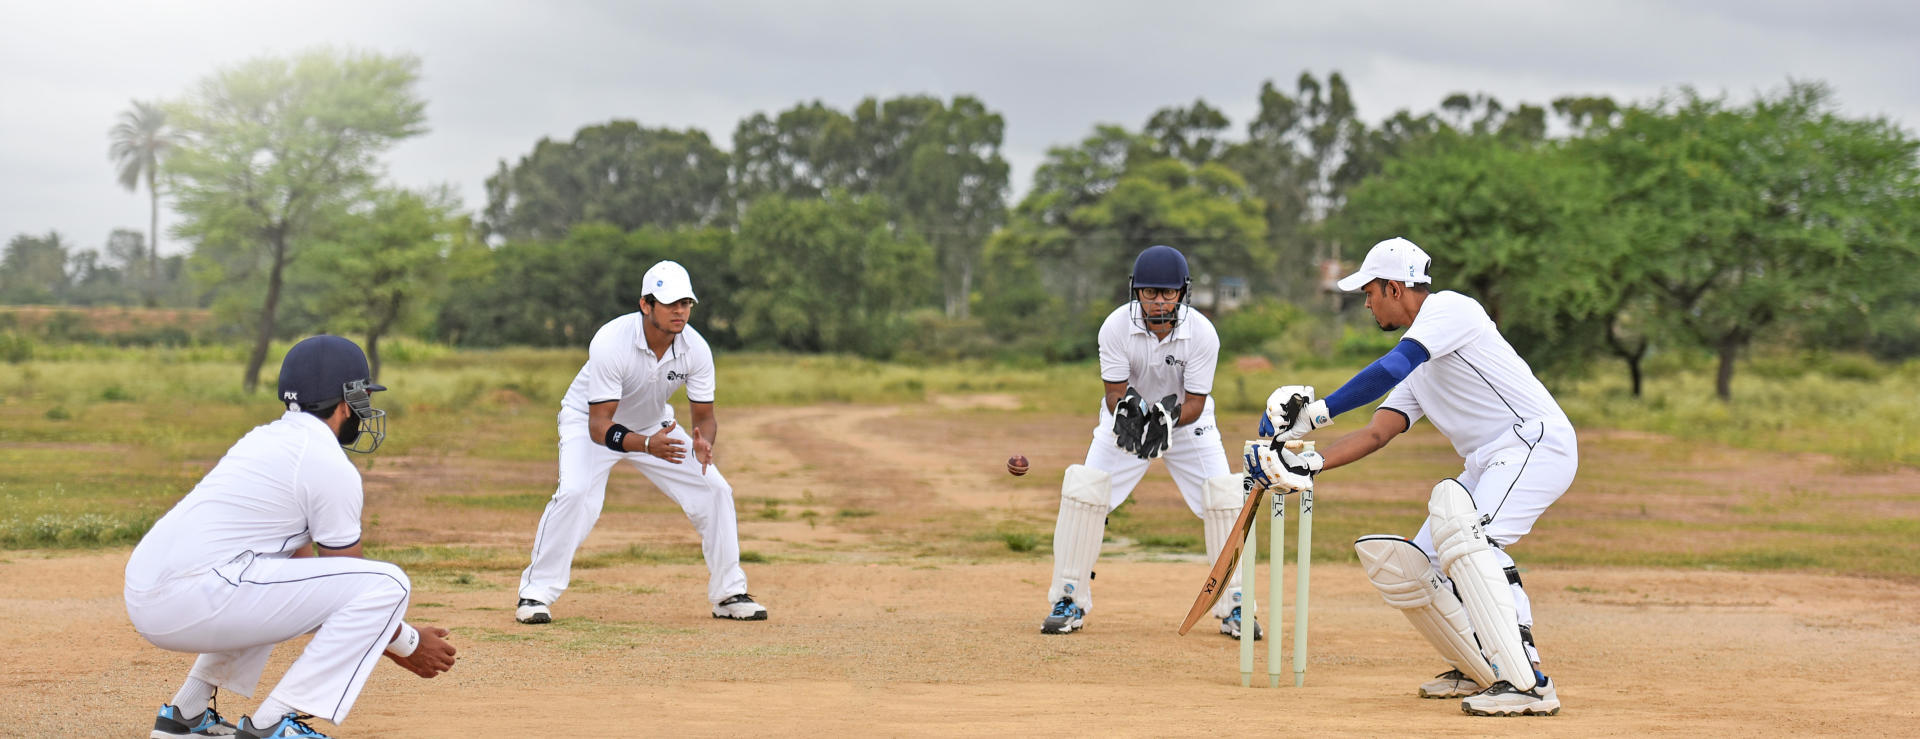 Cricket Rules And Scoring: Understand The Basics To Enjoy the Game Better